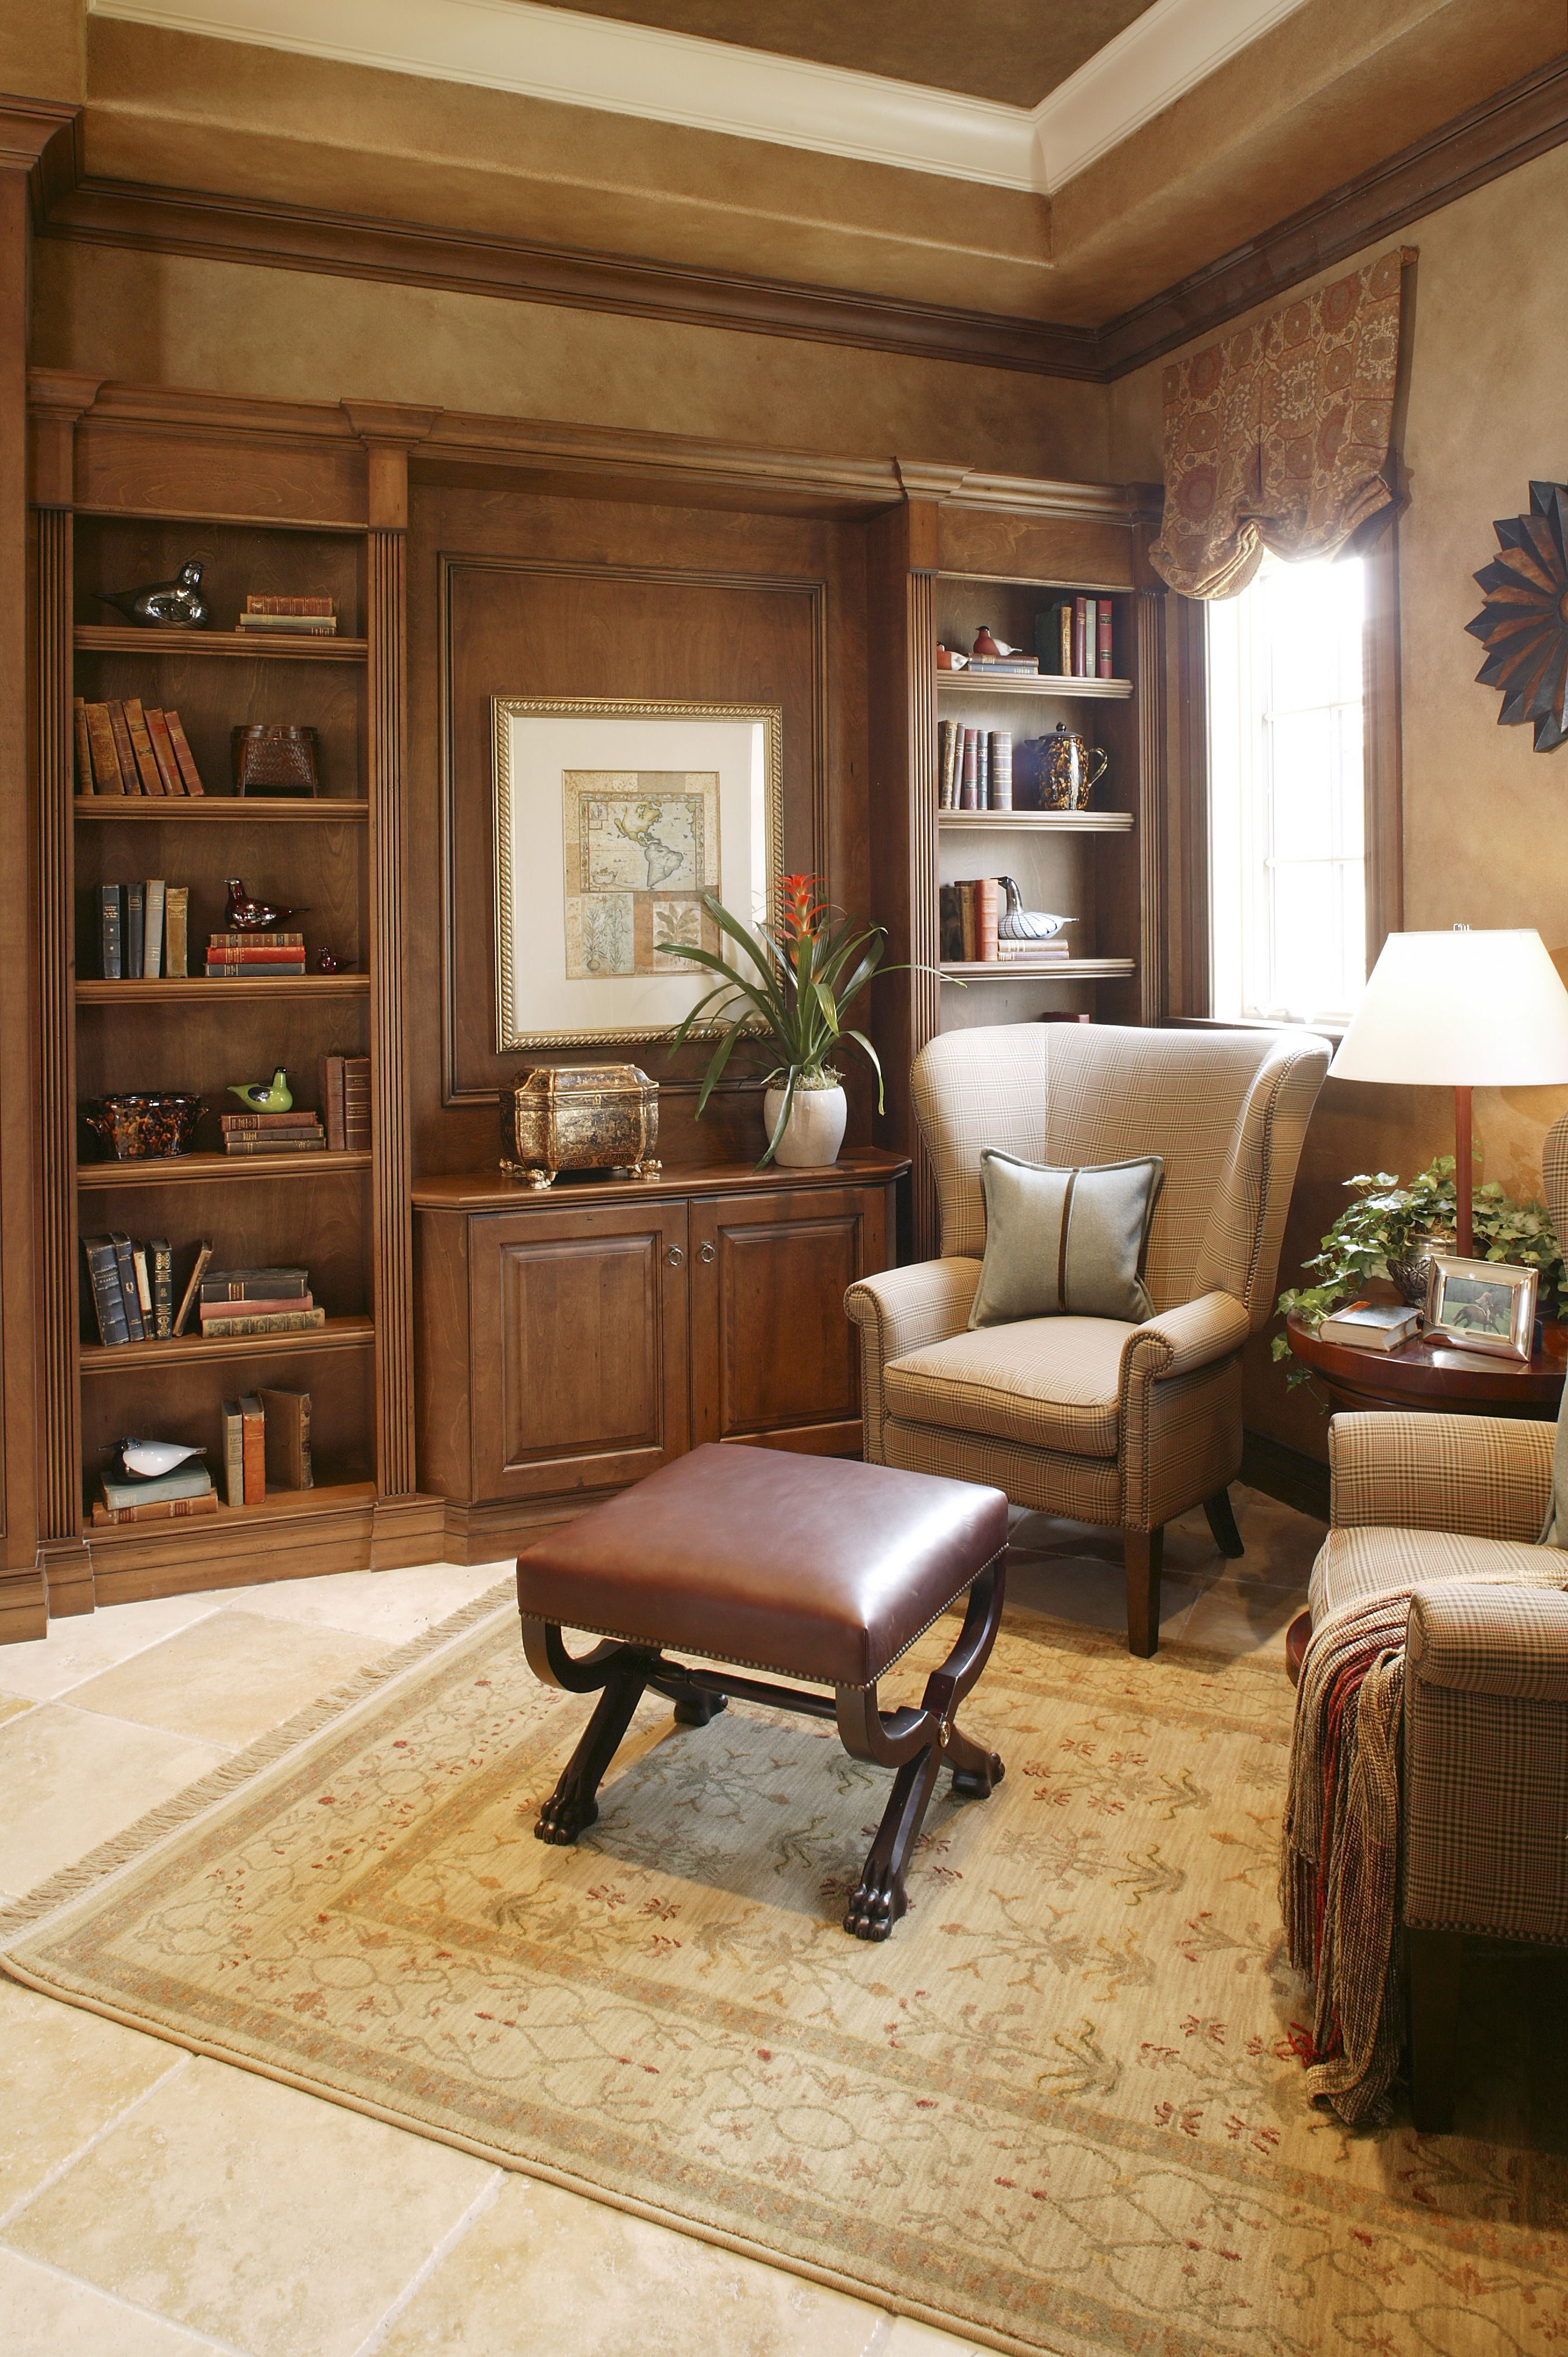 A Luxurious Work Space With Custom Cabinetry And A Built In Bookshelf.  There Is